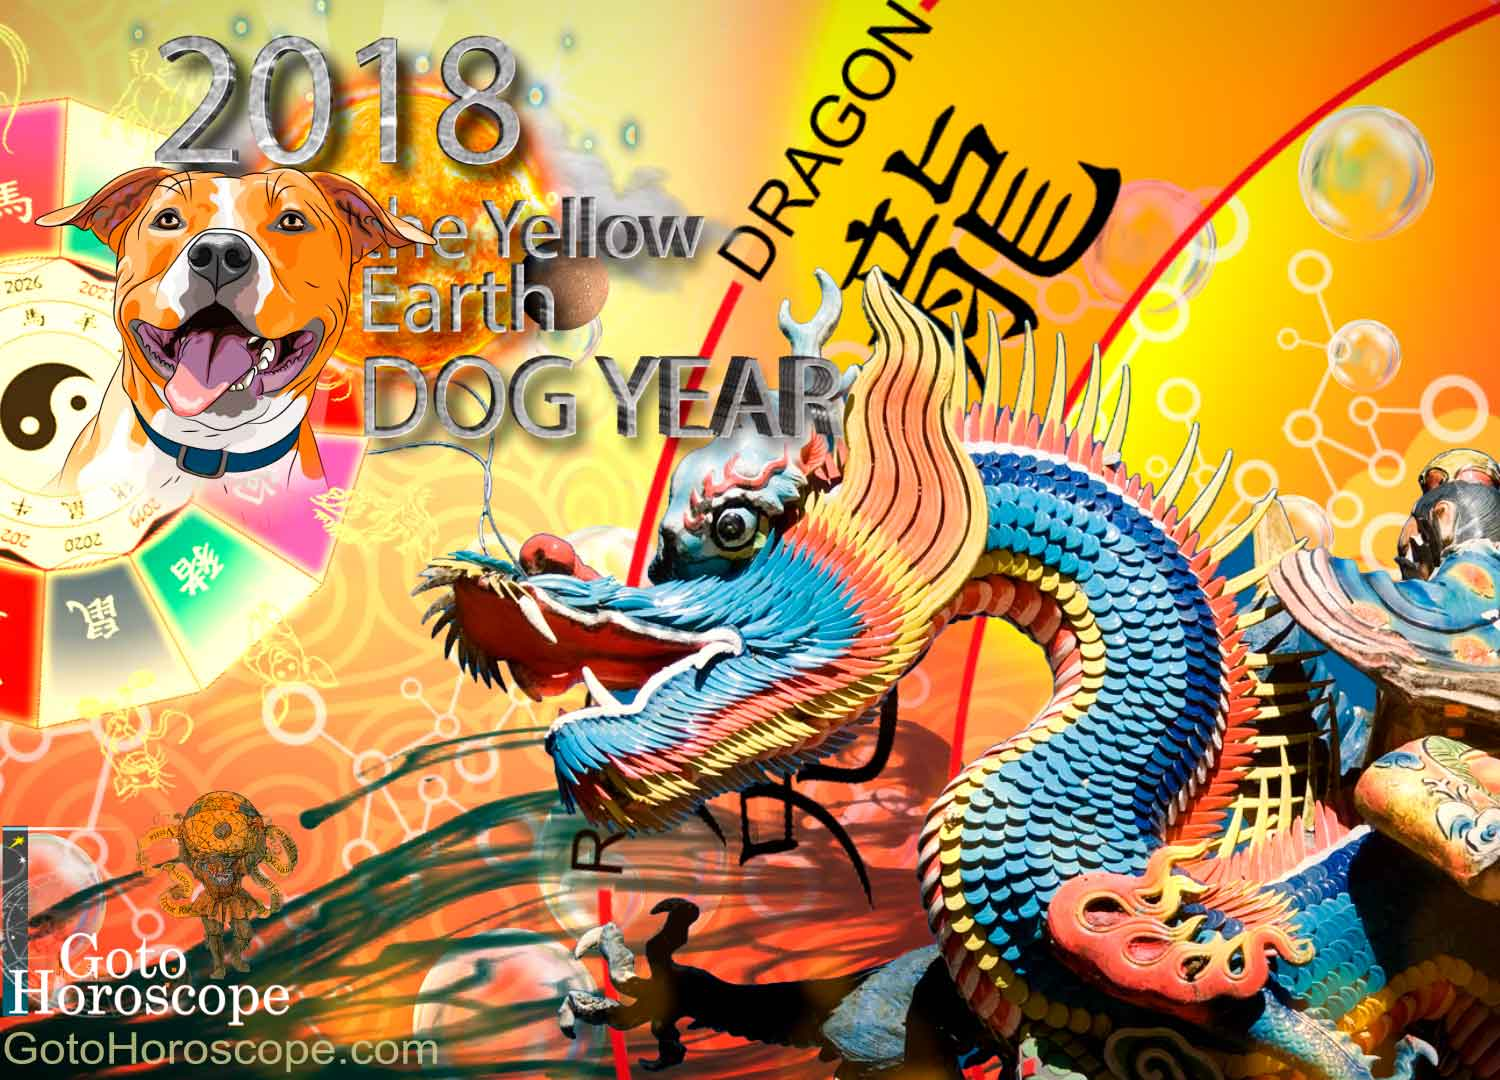 Dragon 2018 Horoscope for the Yellow Earth Dog Year